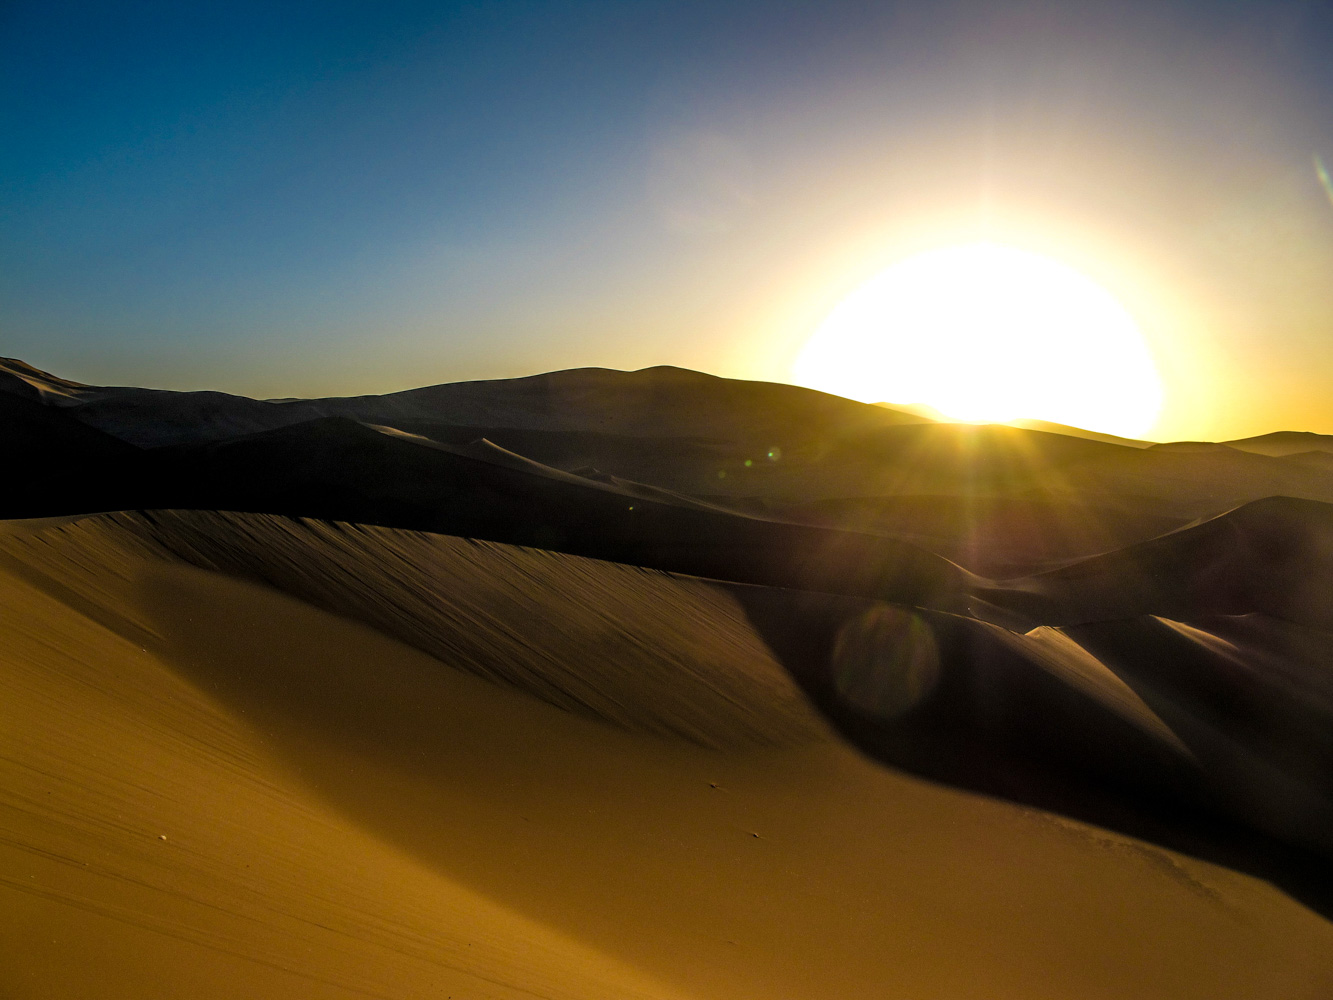 Sunset in the desert outside of Dunhuang